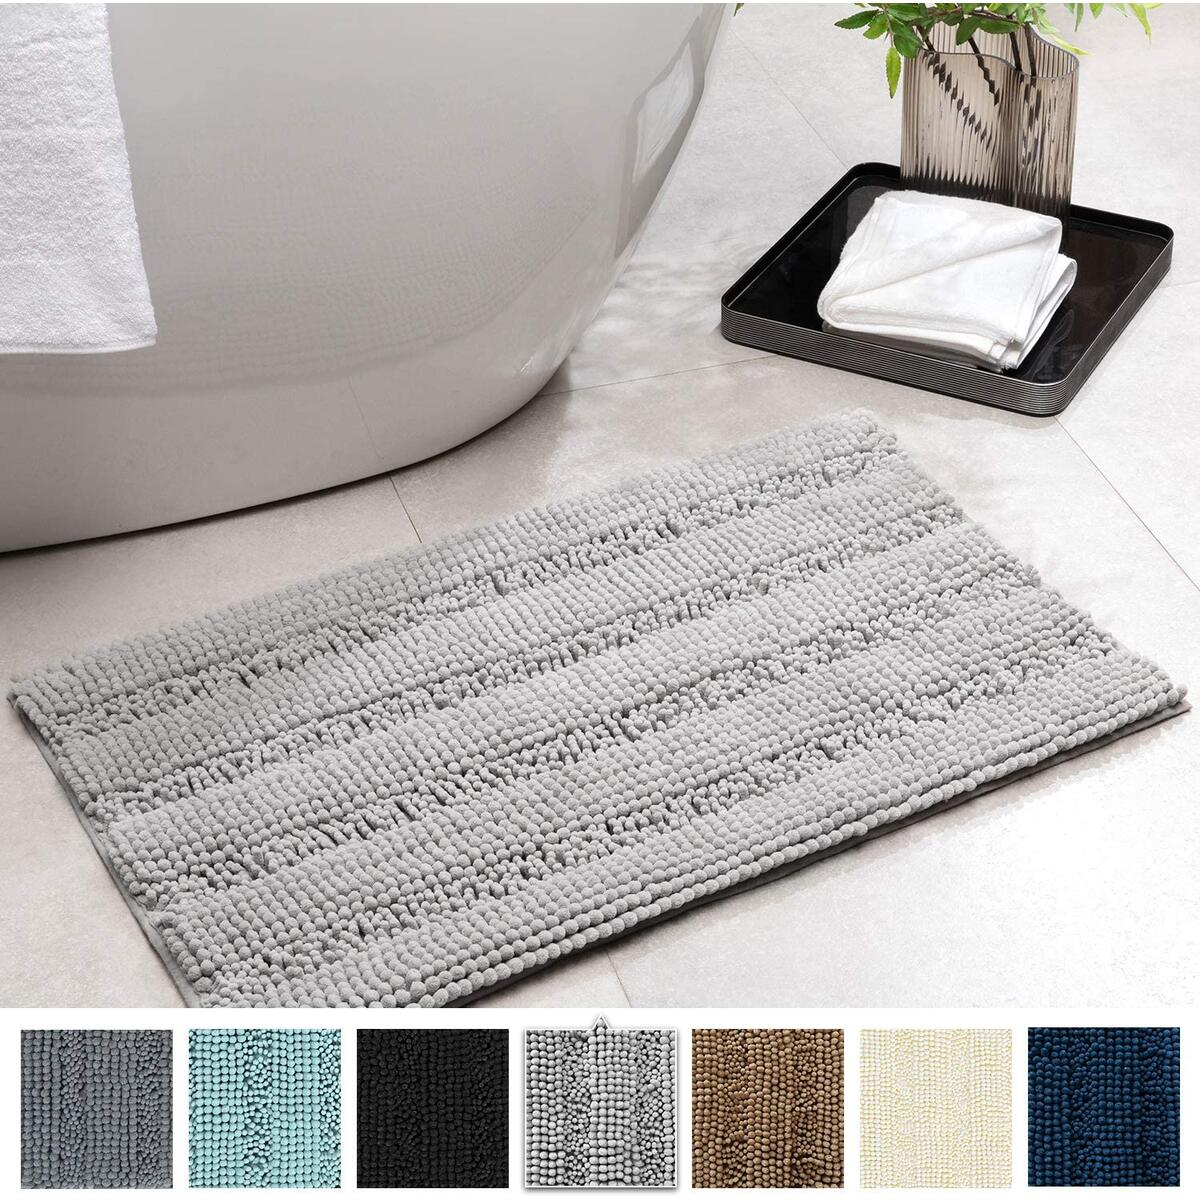 Soft Bathroom Rugs Light Grey Striped Chenille Bath Rug Ultra Absorbent Chenille Bath Mat Non-Slip Bathroom Rug for Bathroom Shower Rug Doormat Kitchen Floor Washable 32 x 20 Inches SERISSA